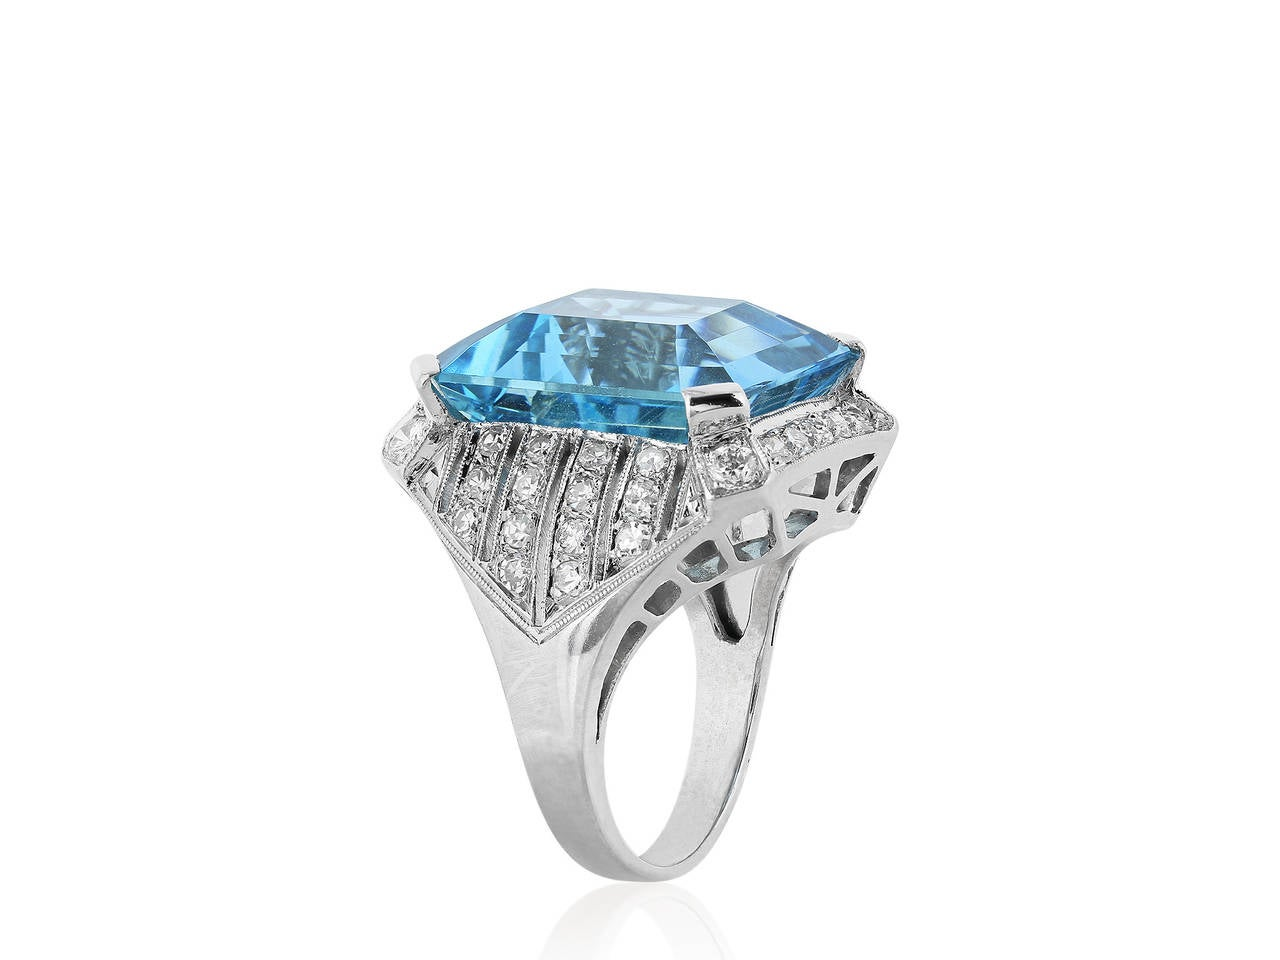 Platinum art deco style ring consisting of 1 emerald cut aquamarine weighing 15.15 carats and accented with pave set rows of diamonds down the shank having an estimated total weight of 1.00 carats.